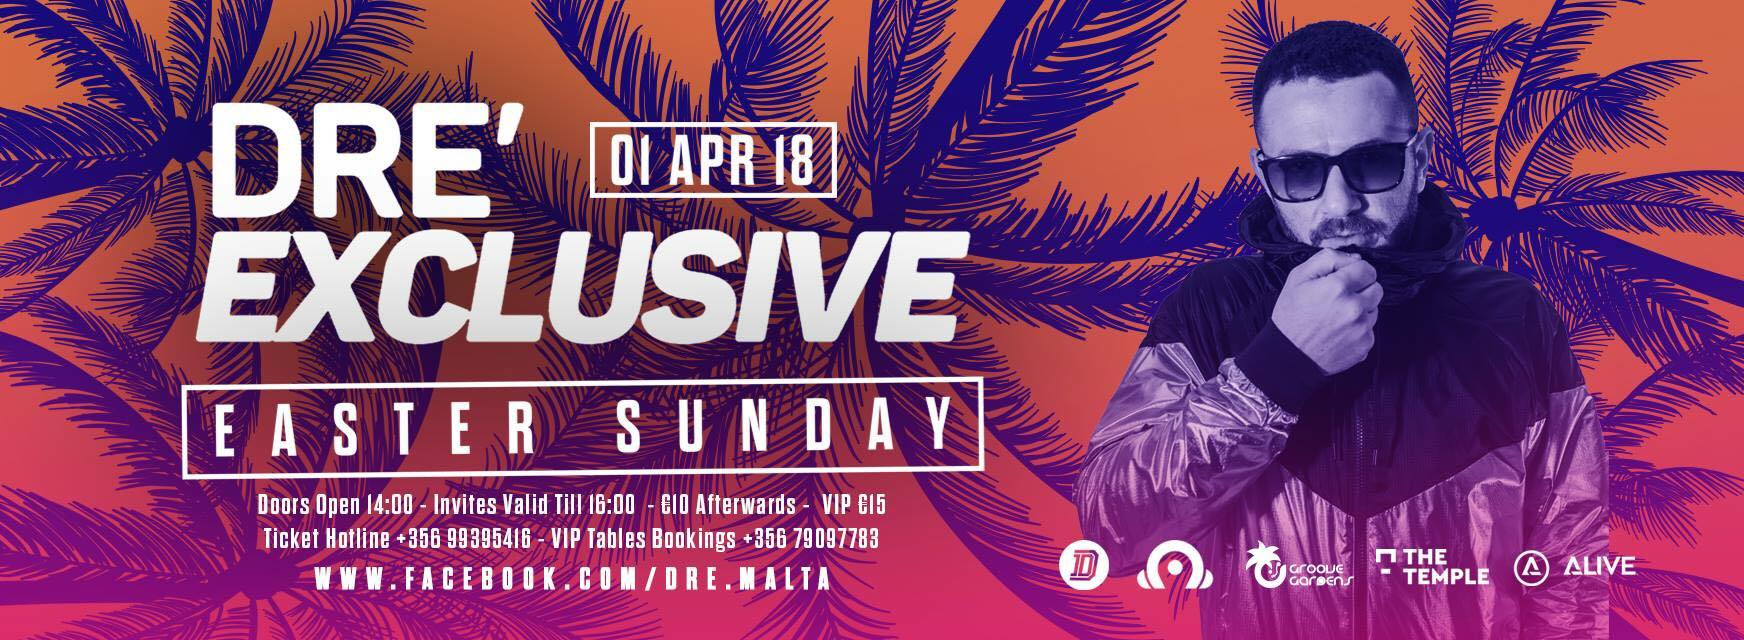 dre exclusive easter sunday